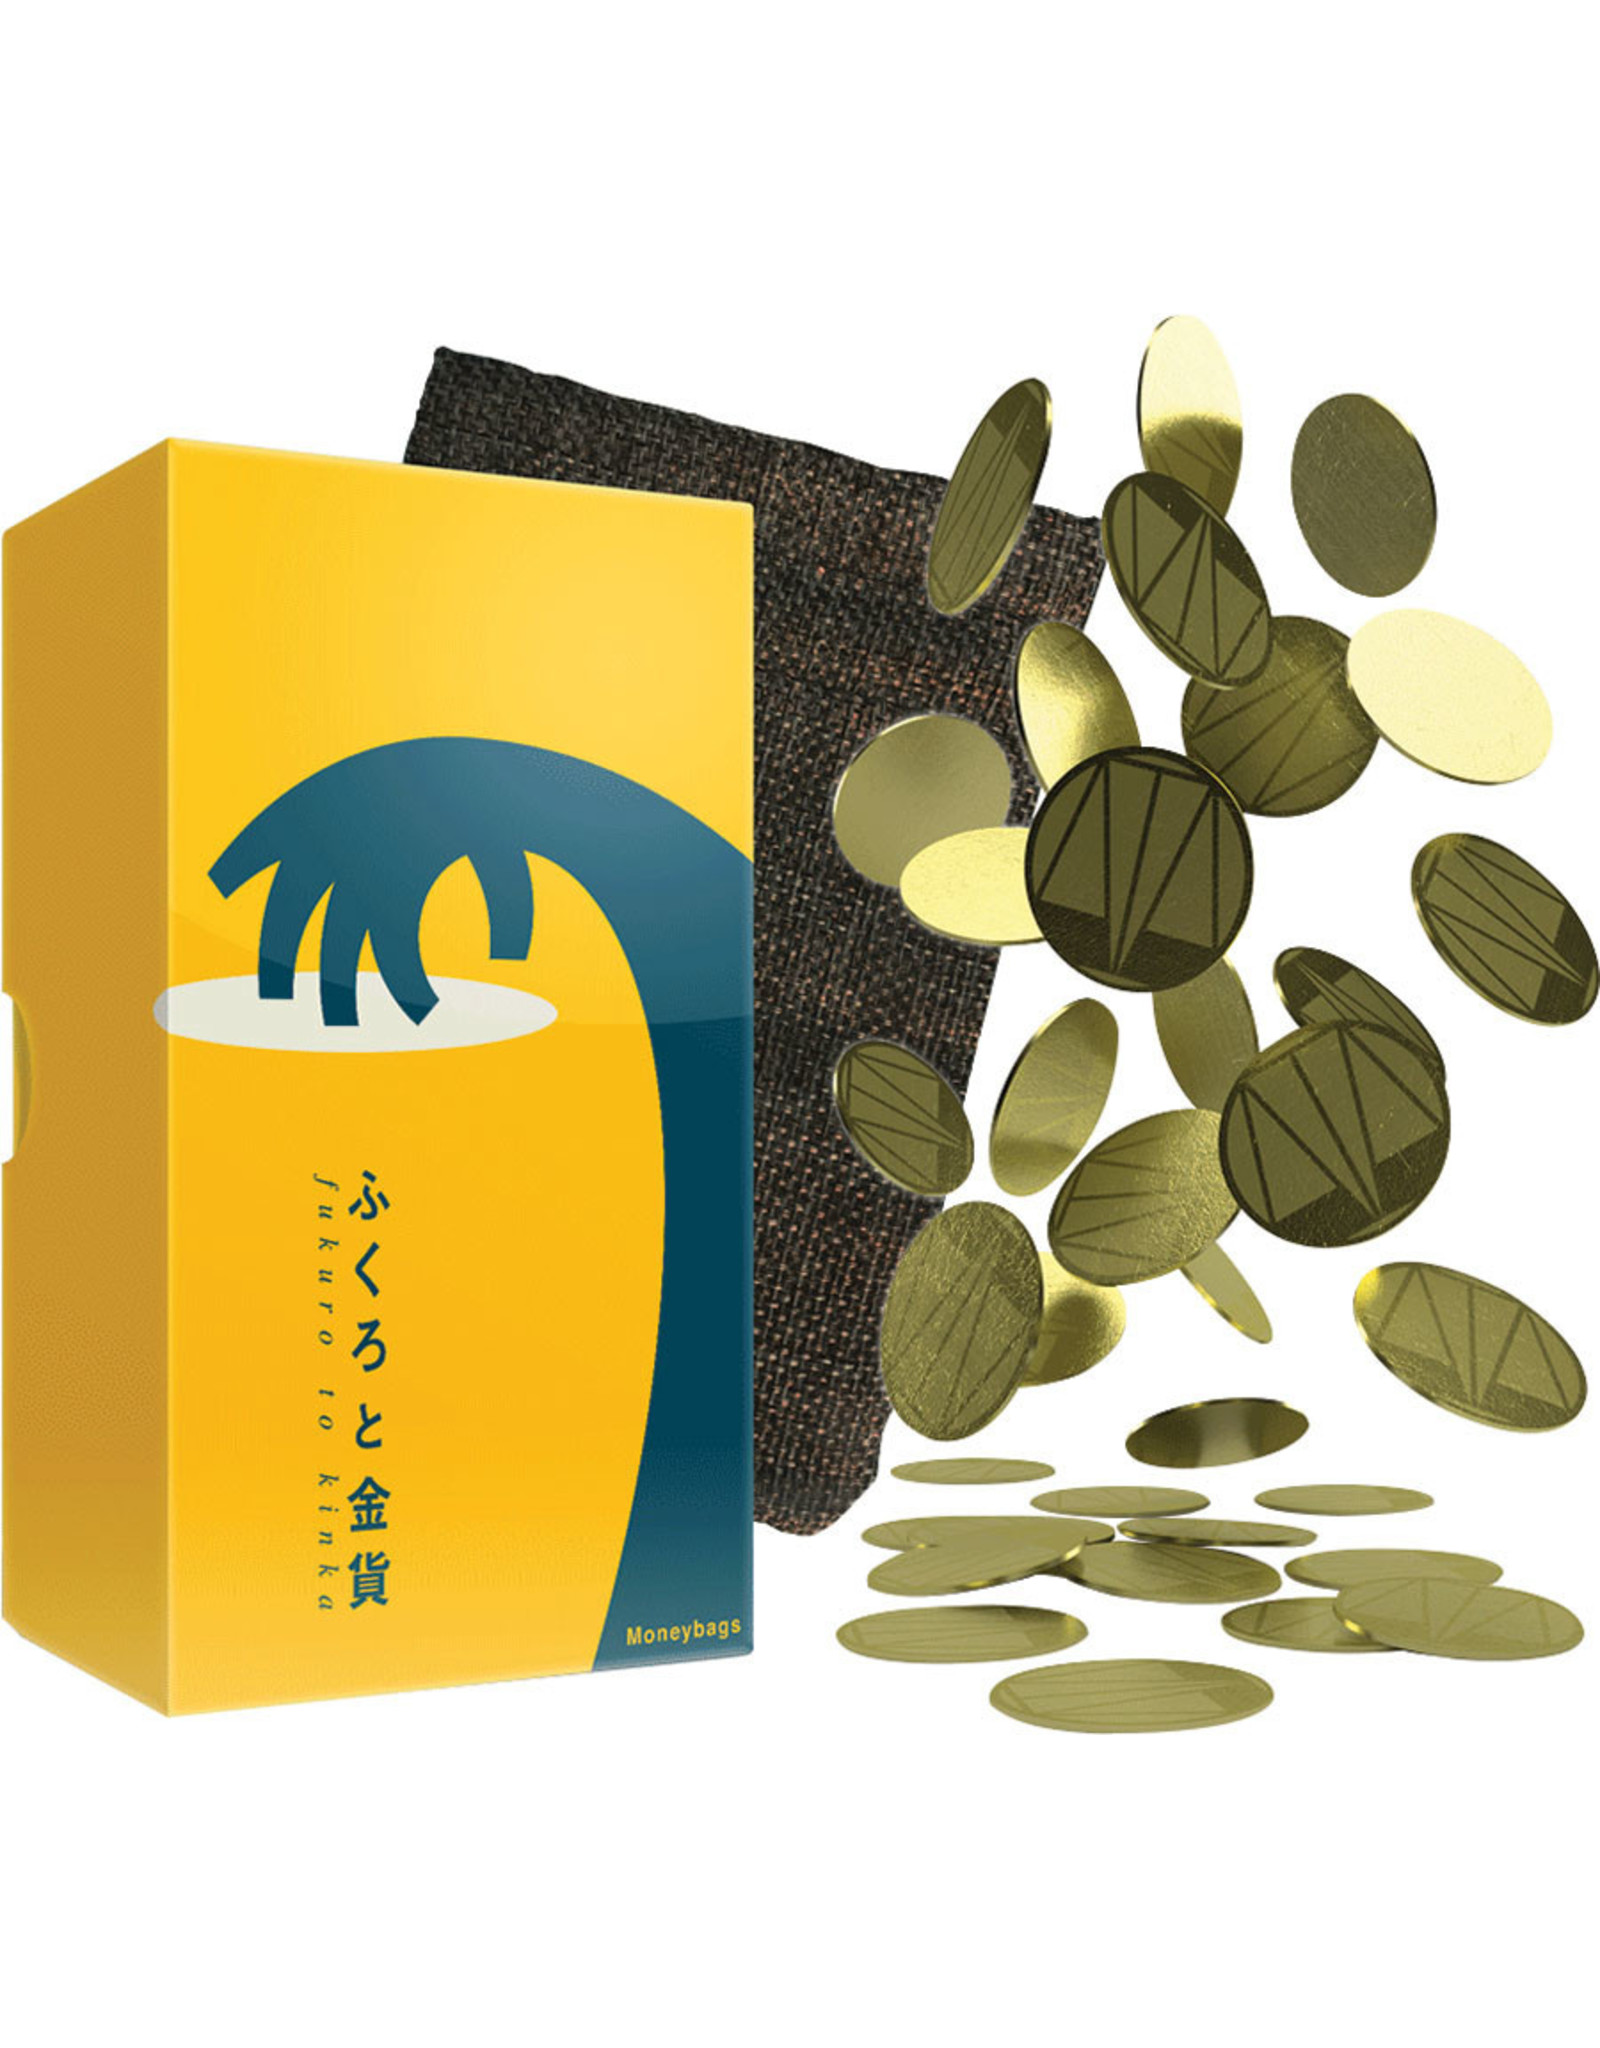 Oink Games Moneybags: Big Box